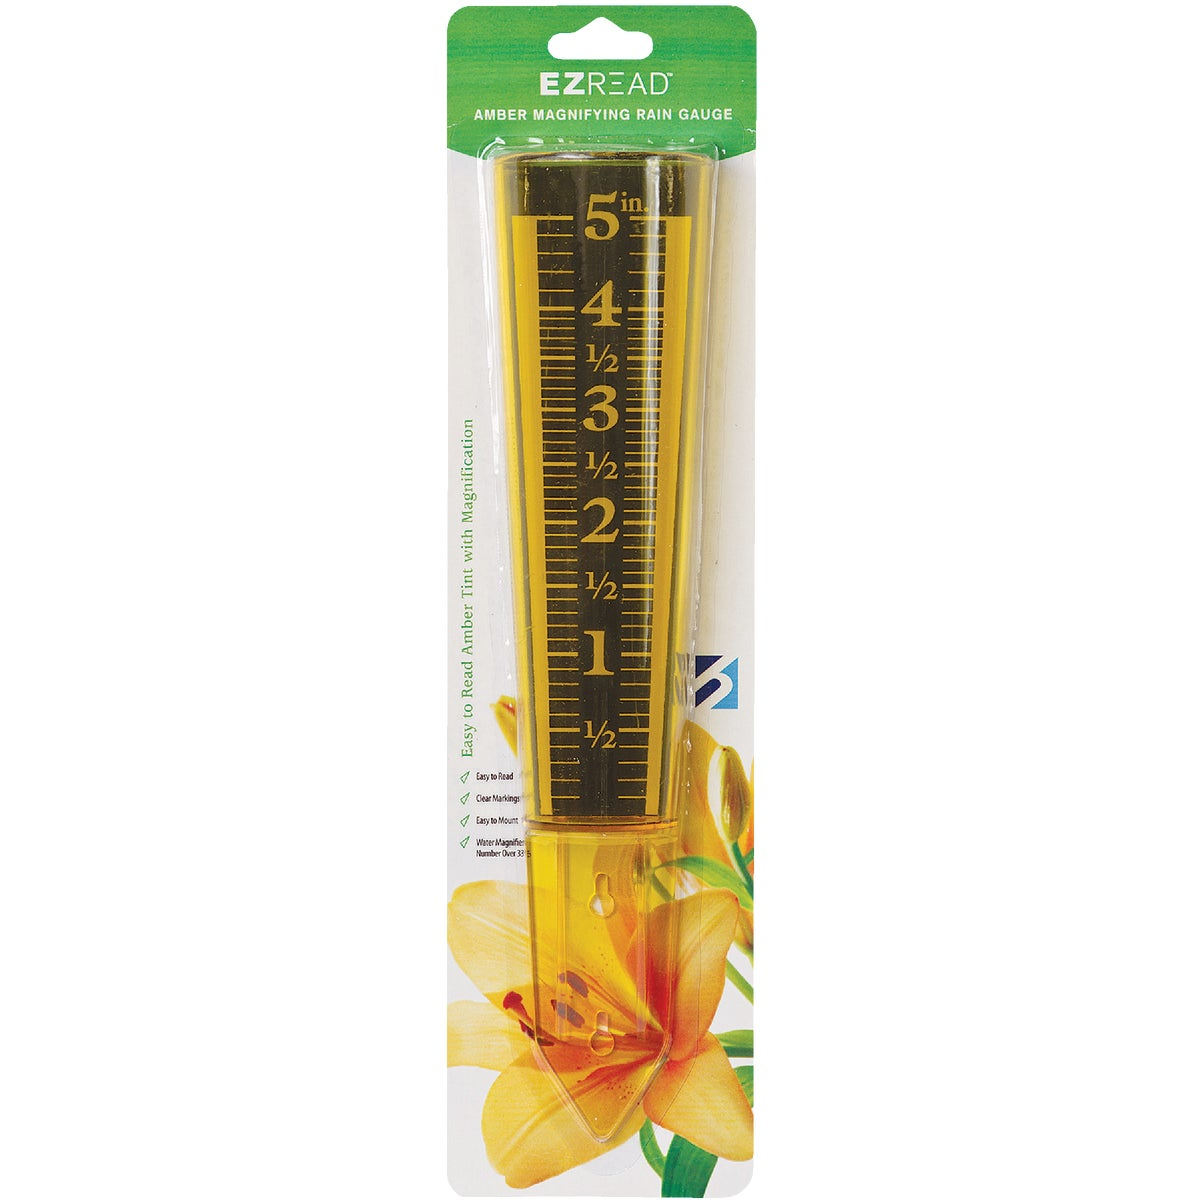 "Item 635375, Capacity: 5"". Easy-to-read measurement increments on amber background."